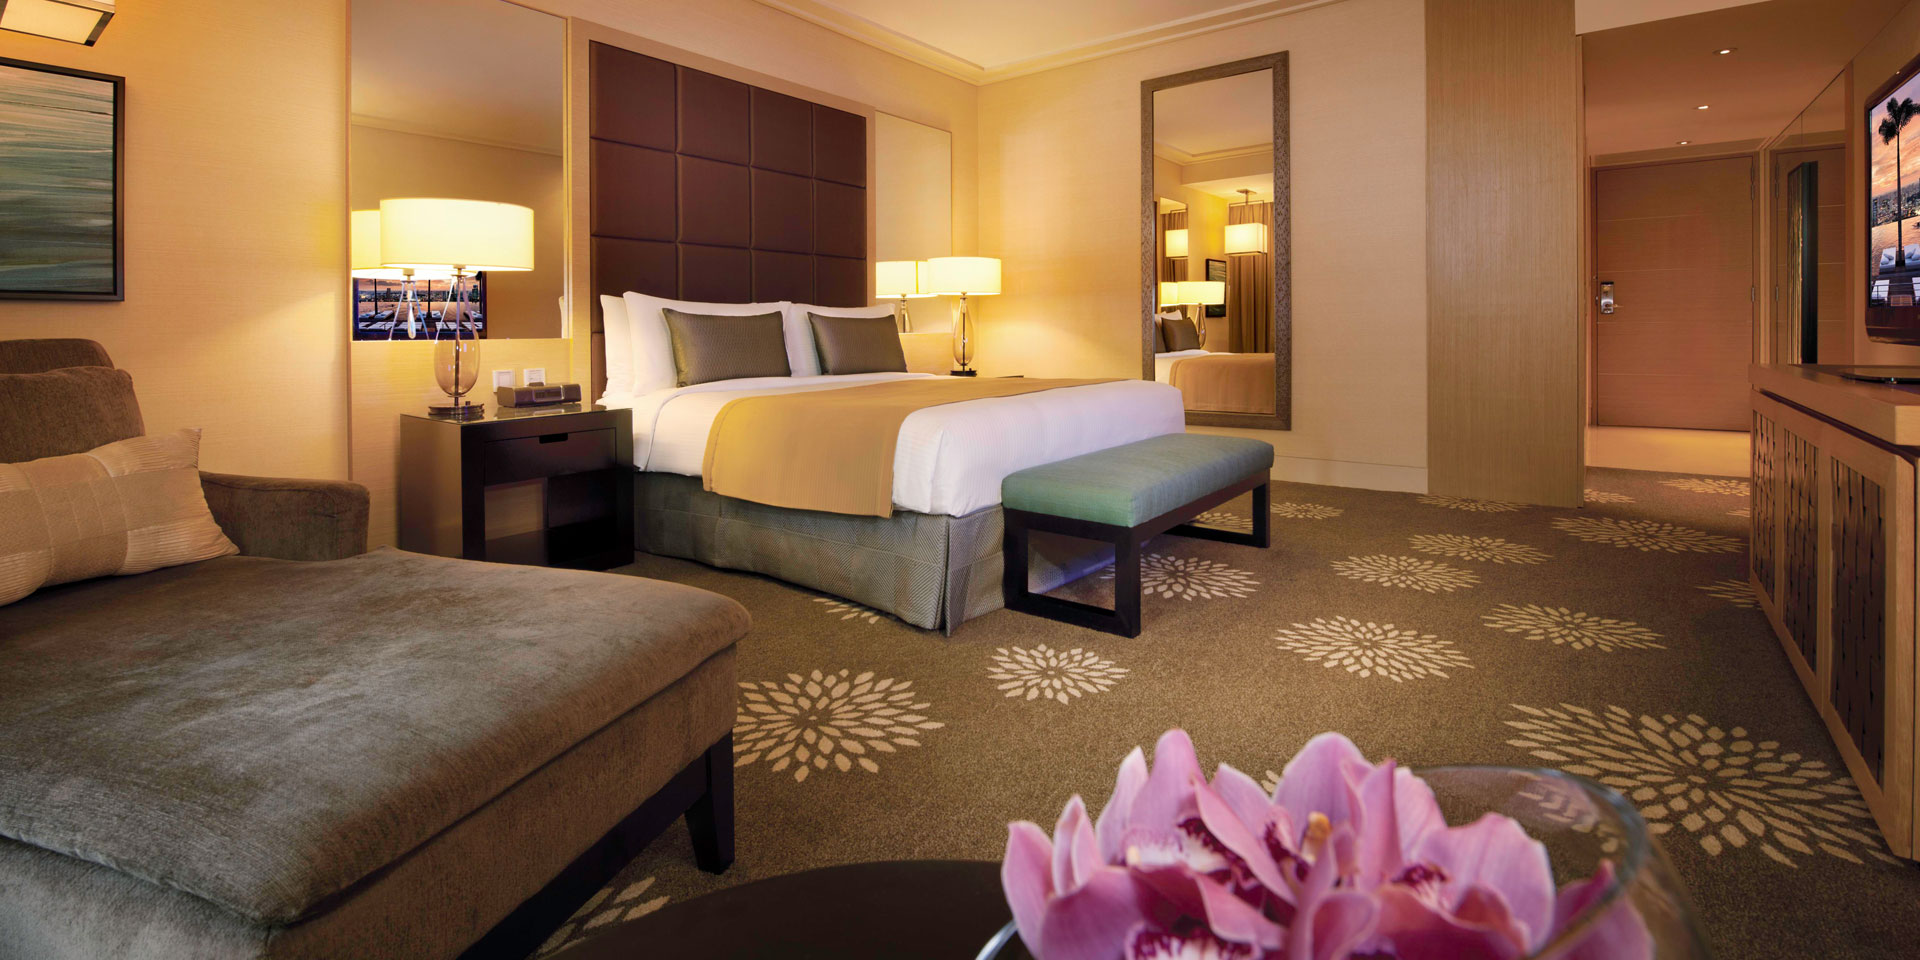 Club Room at Marina Bay Sands with King Bed